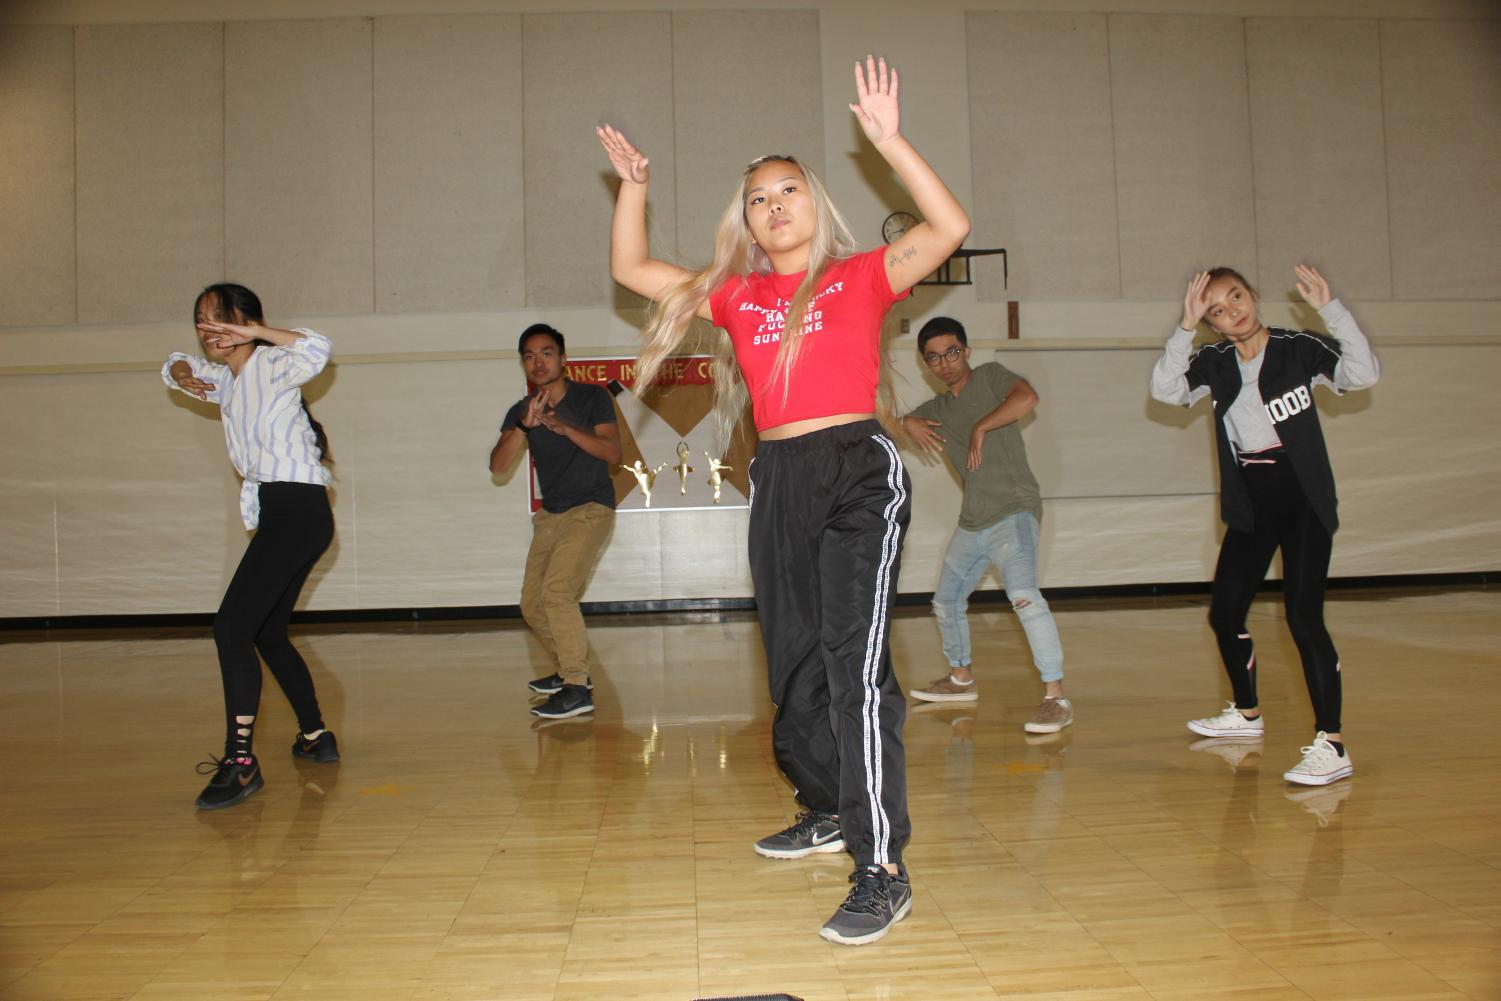 From left to right, Kristina Yang, Mark Joseph Abuda, Melissa Lee, Anthony Bernardez and Joyce Vang running their winning dance set they performed at the SacAnime K-pop battles on Sept. 1, 2018.